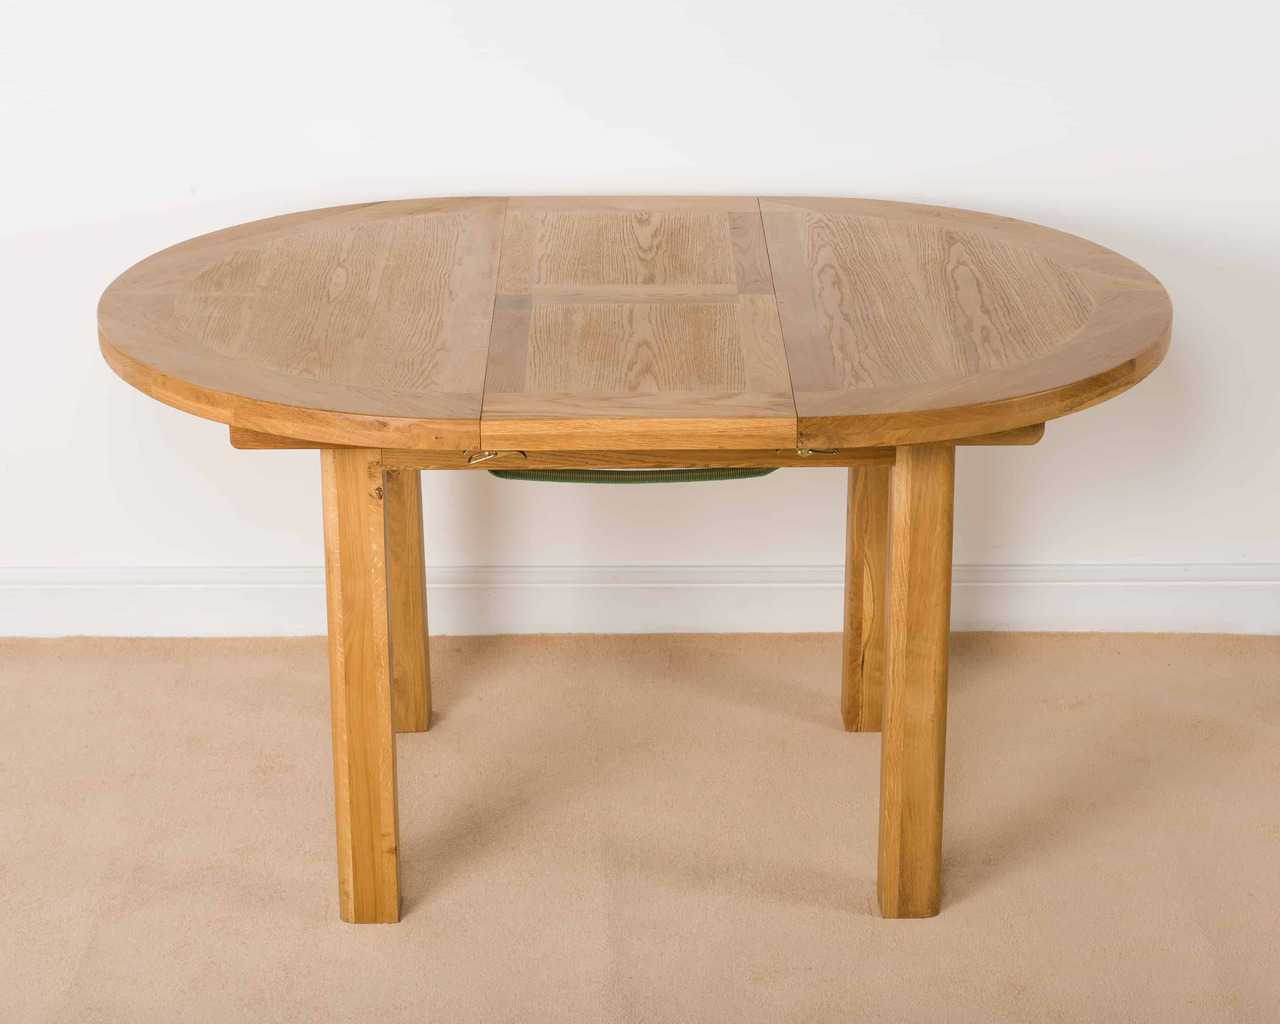 SHREWSBURY SOLID CHUNKY WOOD RUSTIC OAK ROUND EXTENDING DINING TABLE